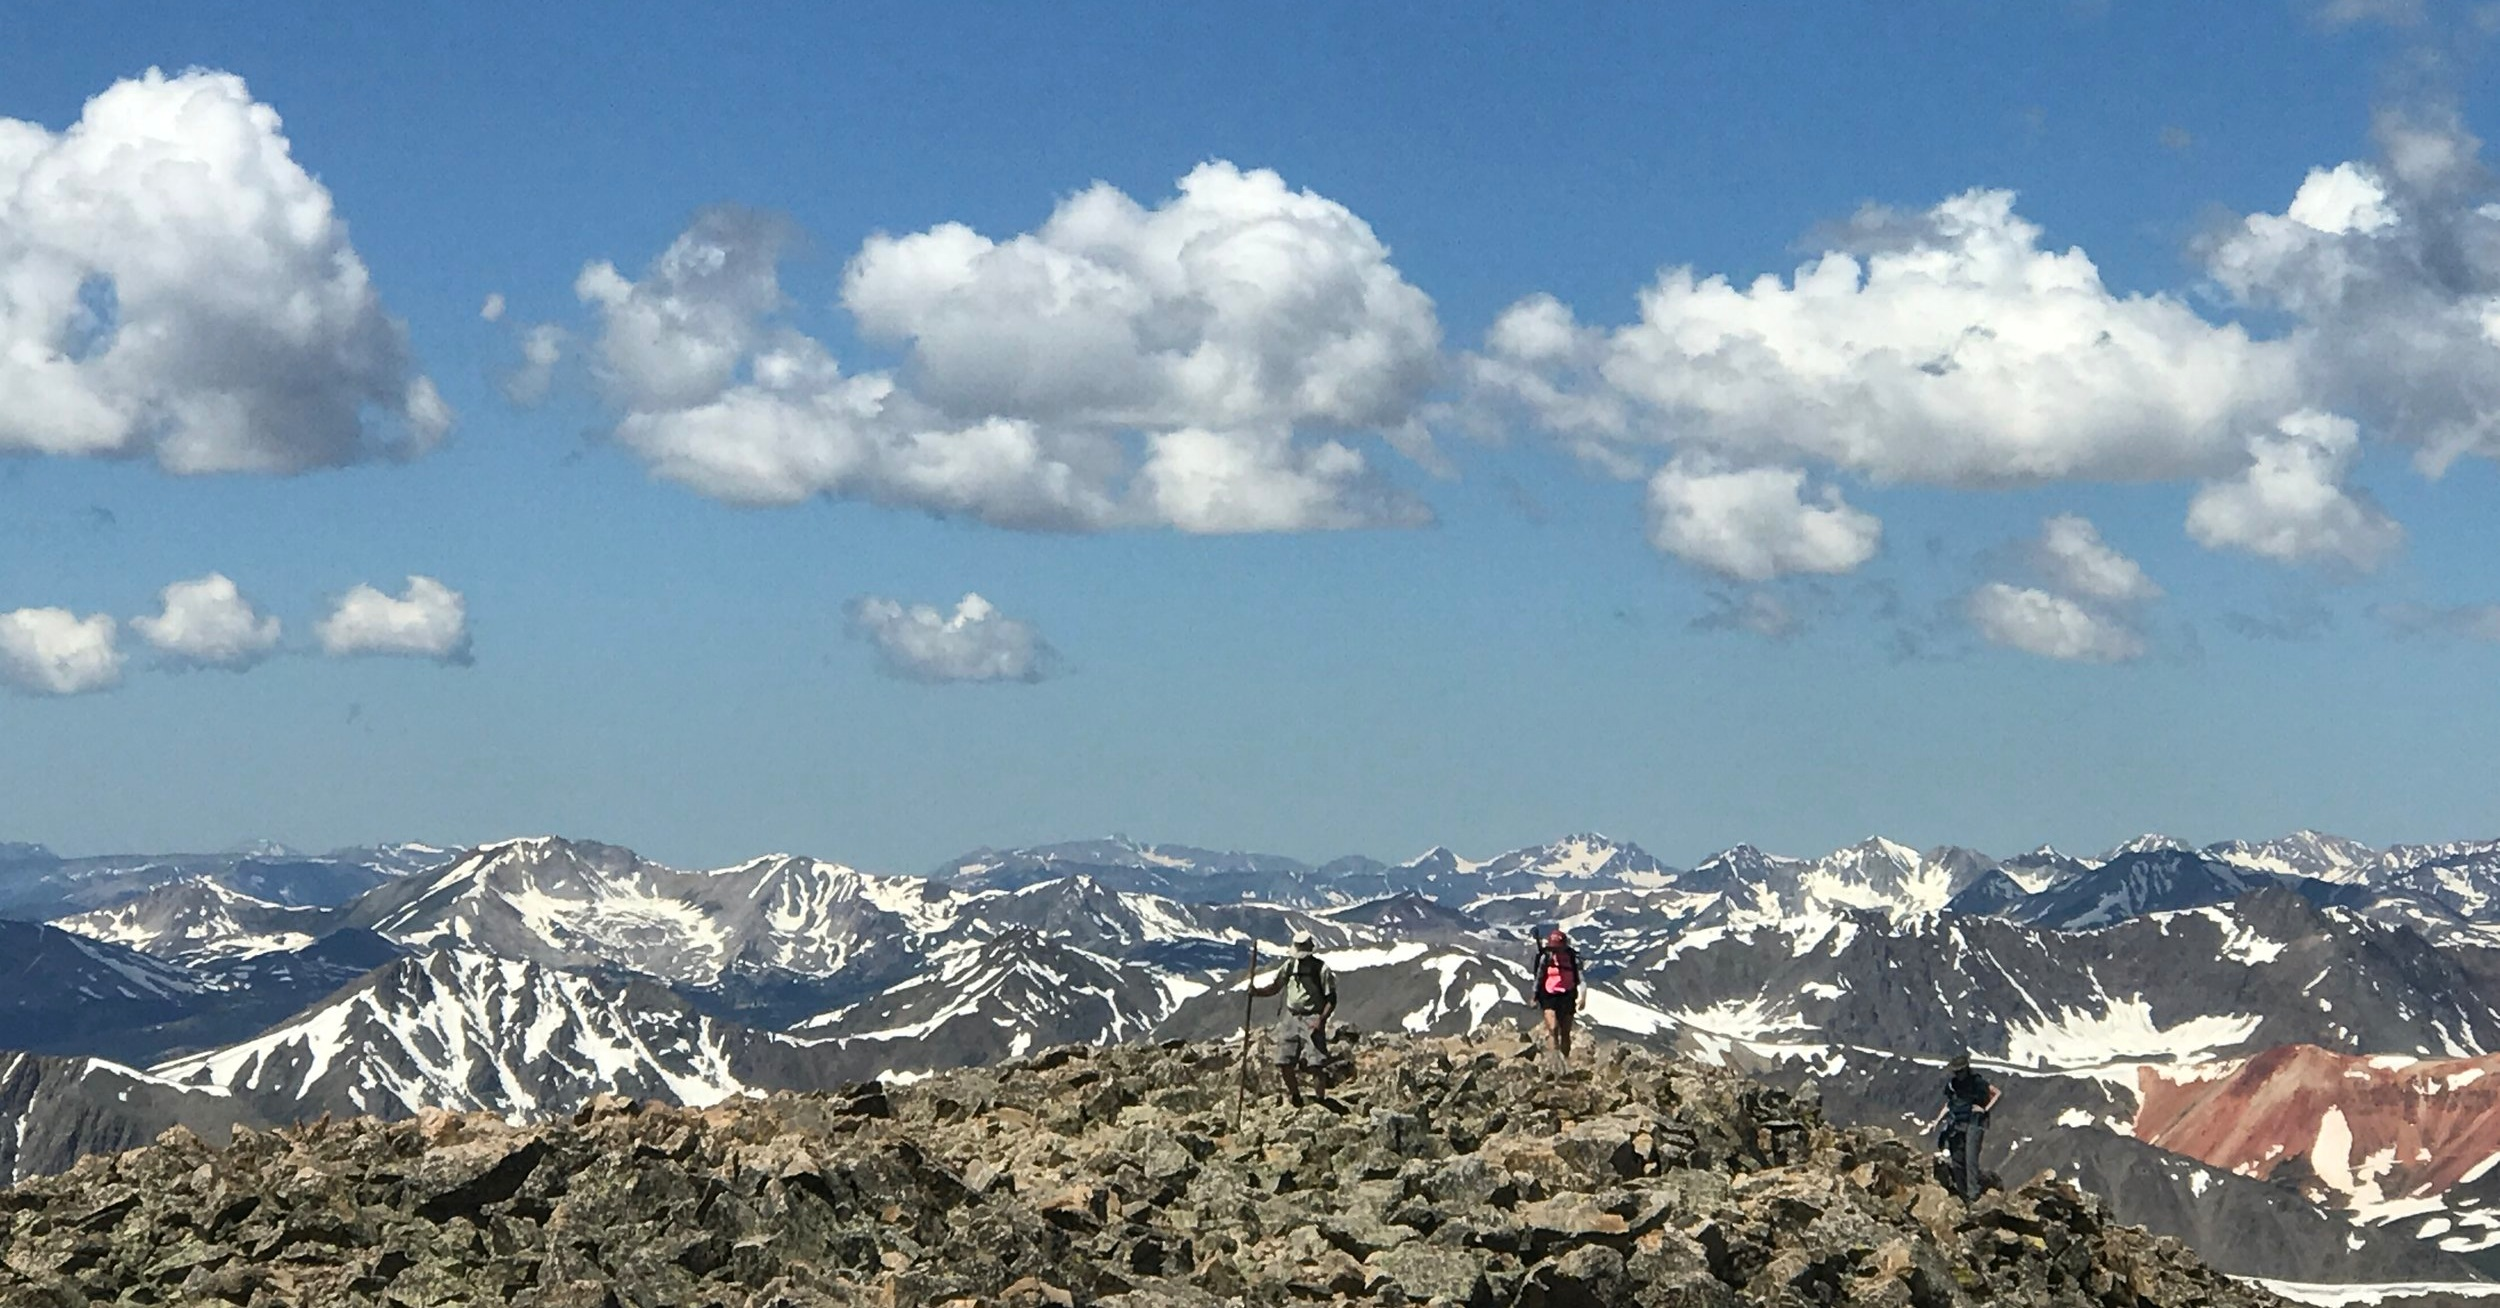 Hikers nearing the summit of one of Nolan's many 14,000ft peaks.